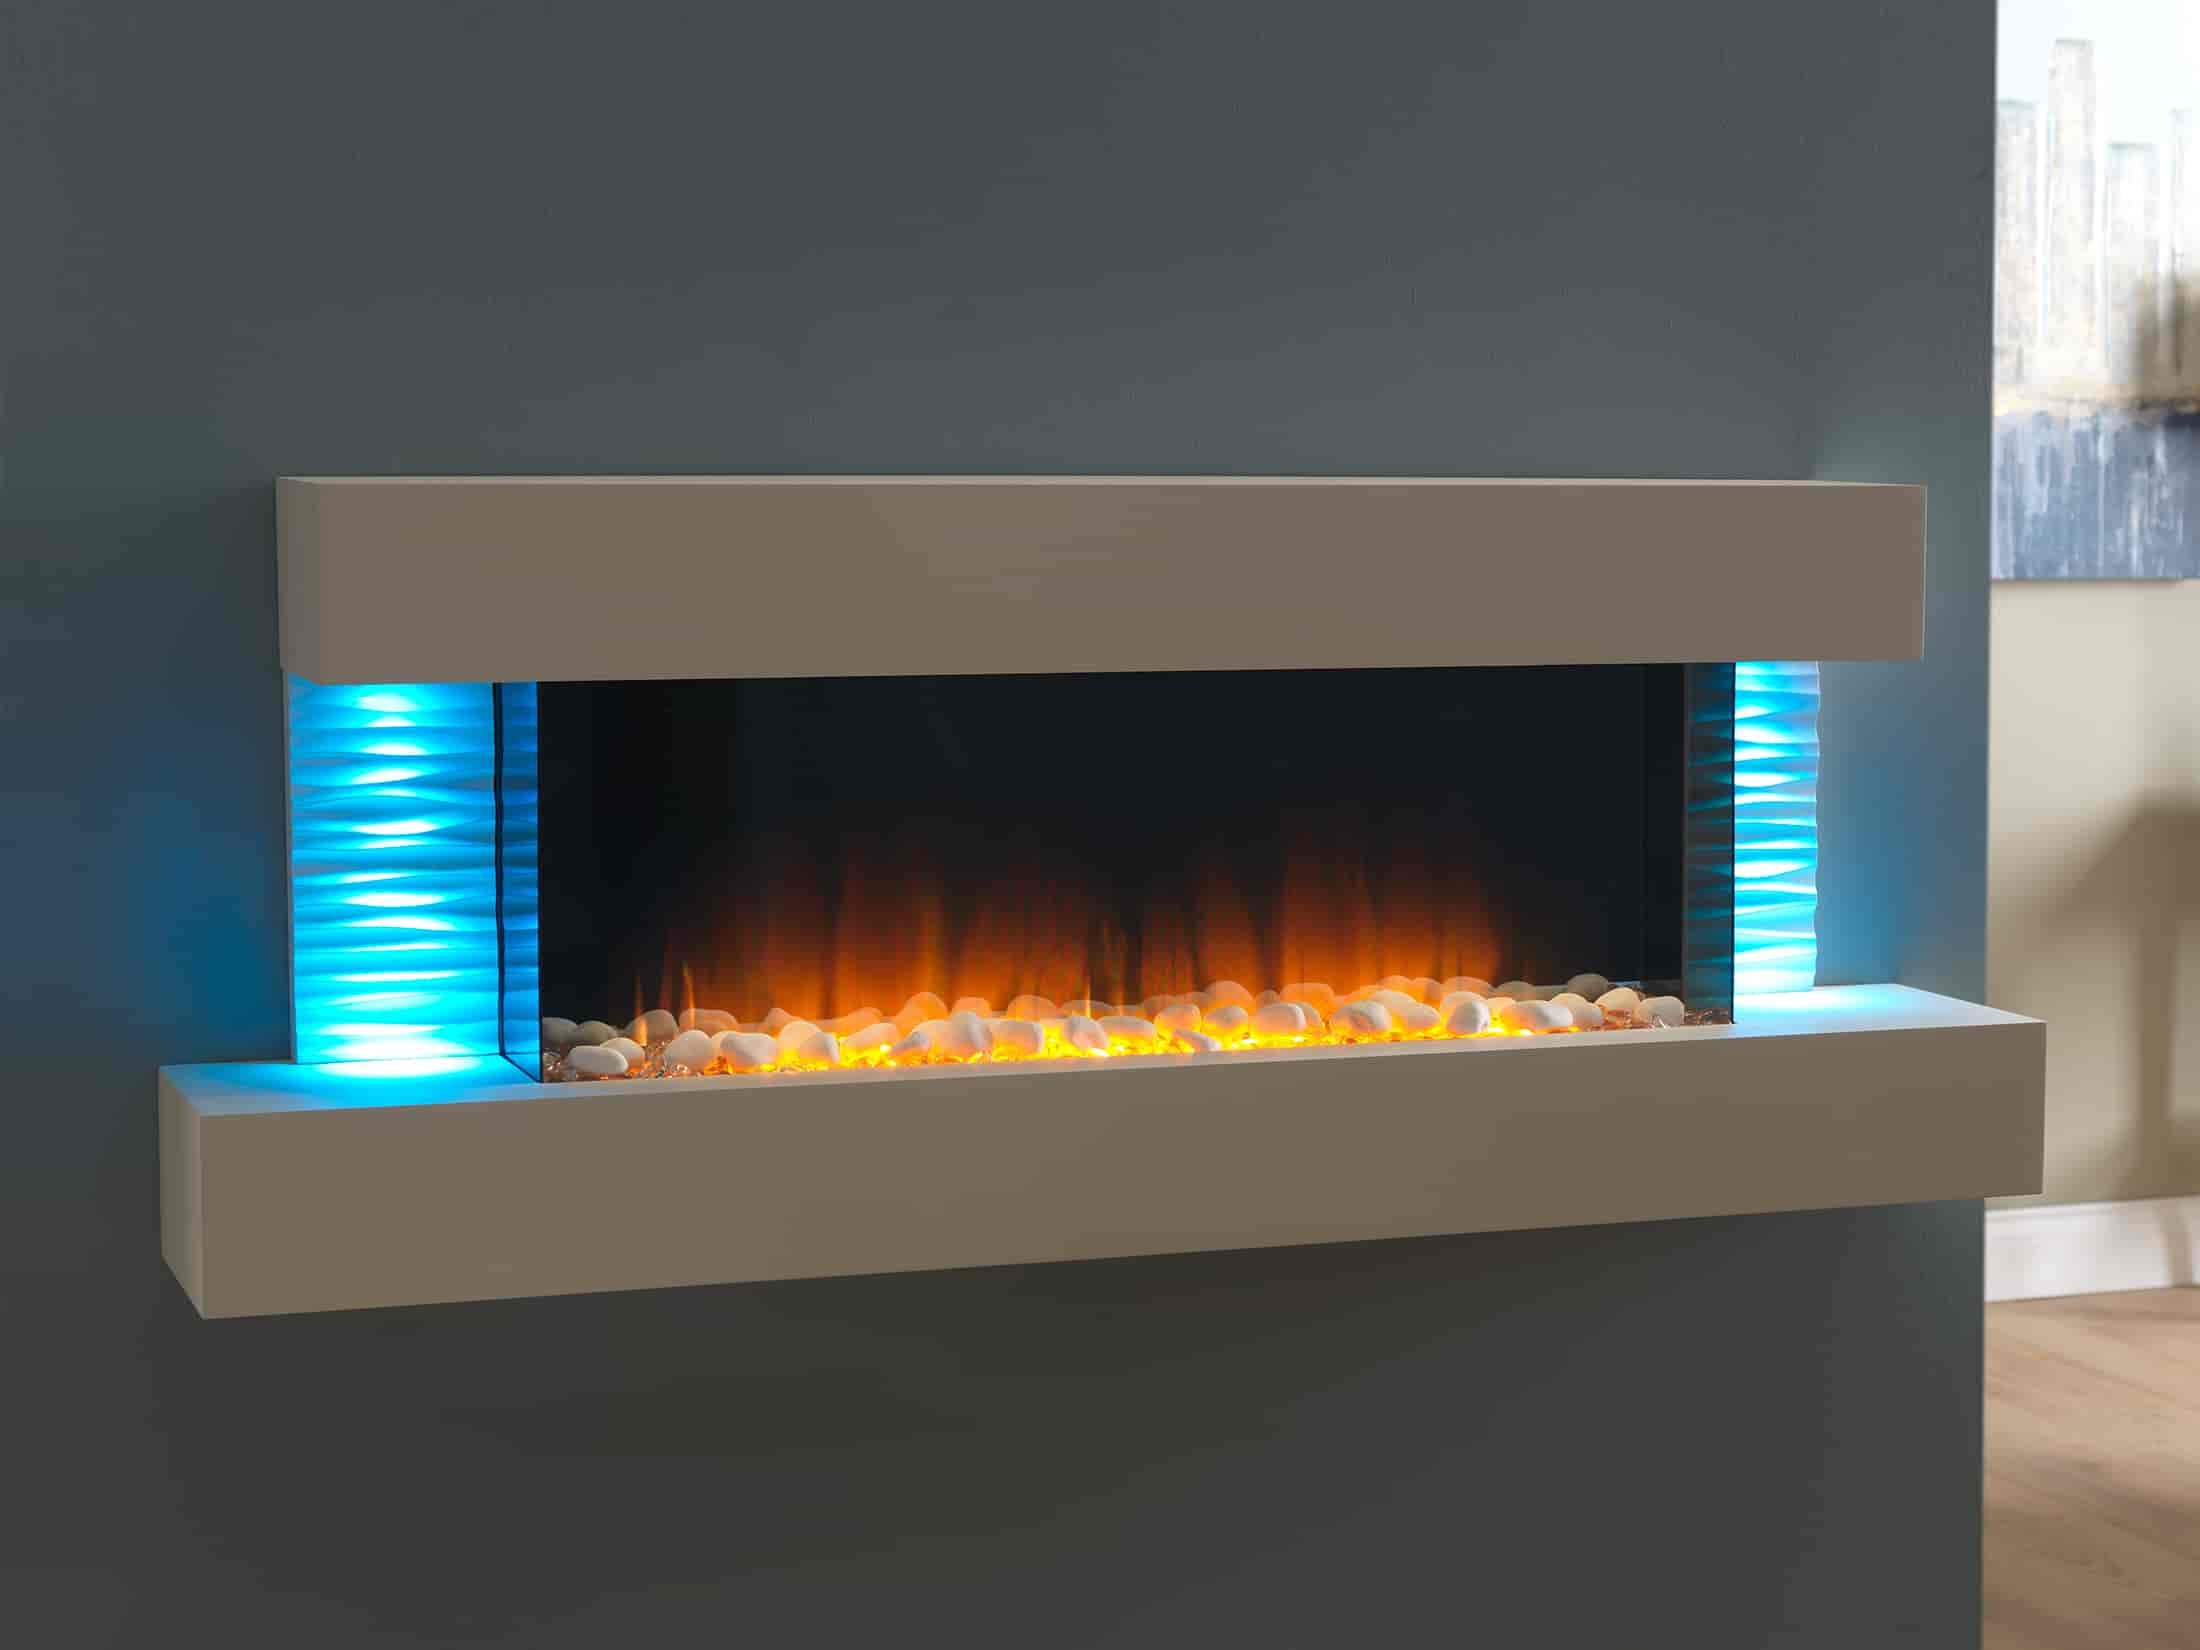 Fireplaces LiverpoolMerseysidegas fireselectric fires